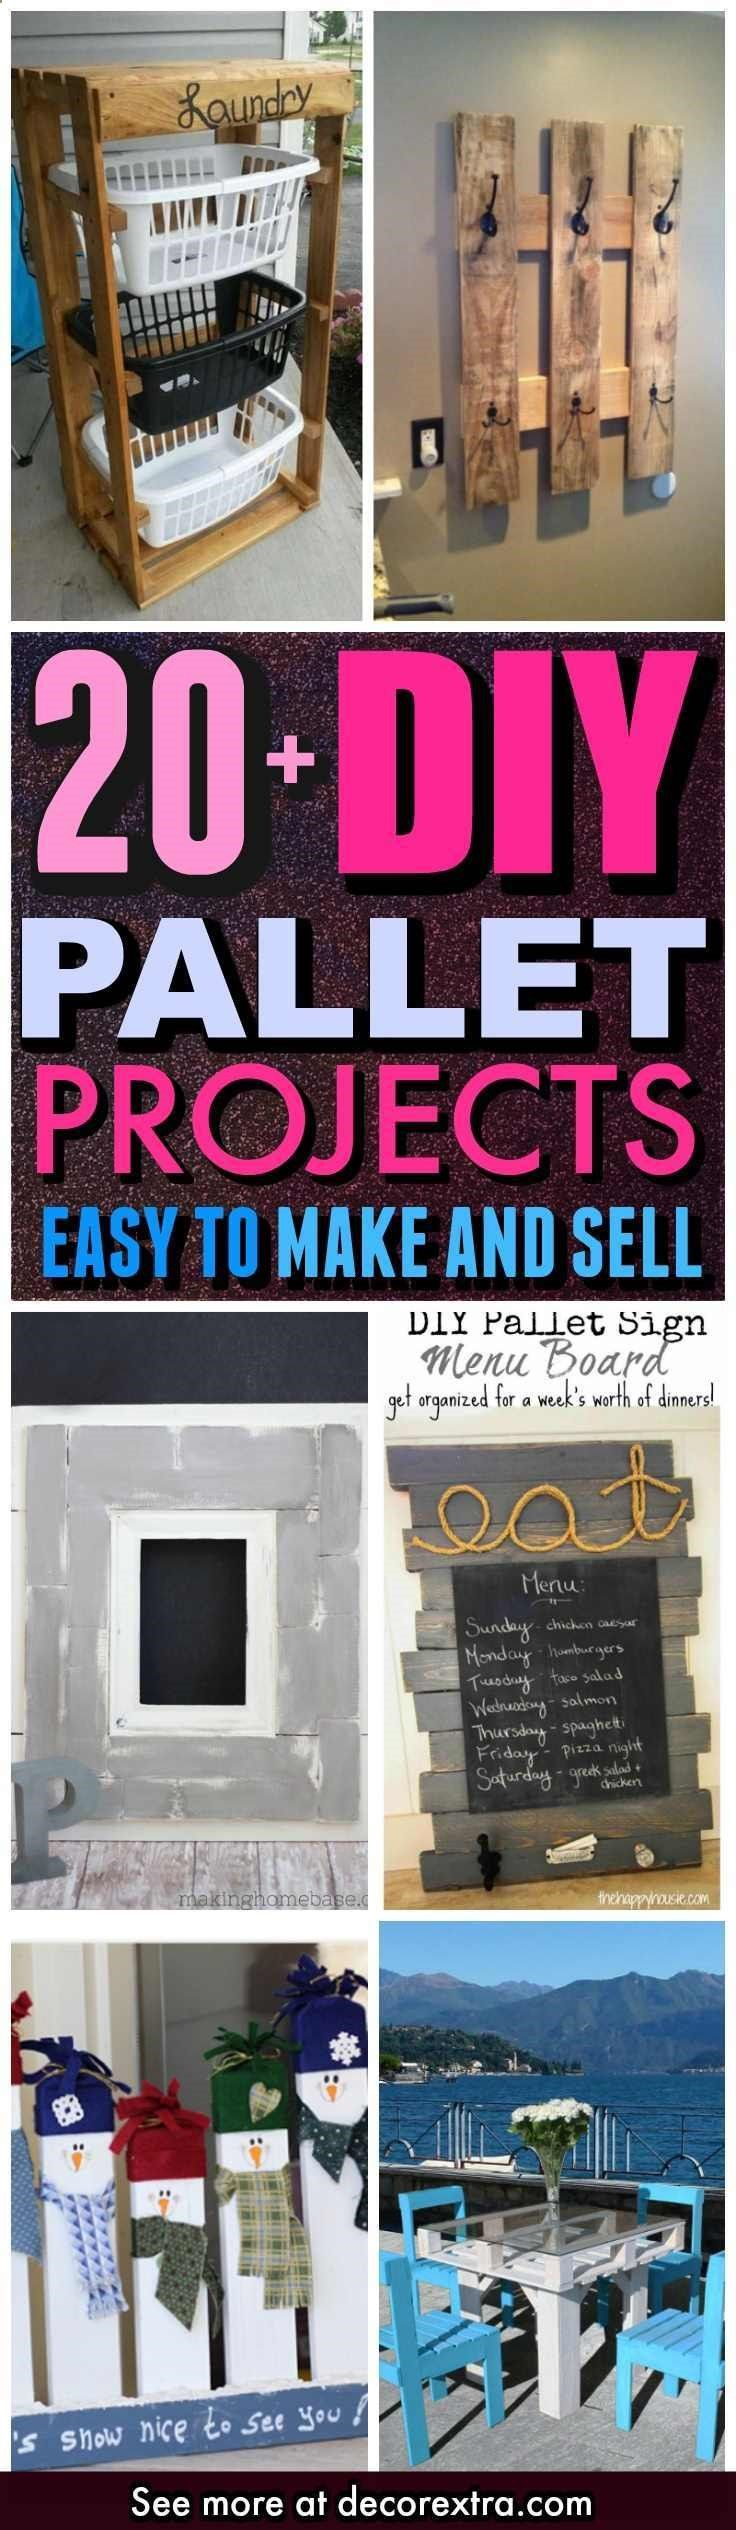 DIY Pallet proejctsThat Are Easy to Make and Sell ! Today we present you one collection of 20  DIY Pallet Projects offers inspiring ideas. You can makeso many different type of items with pallets andyou can get started selling your crafts on Etsy or other sites. We hope you find our gallery awesome. You can …